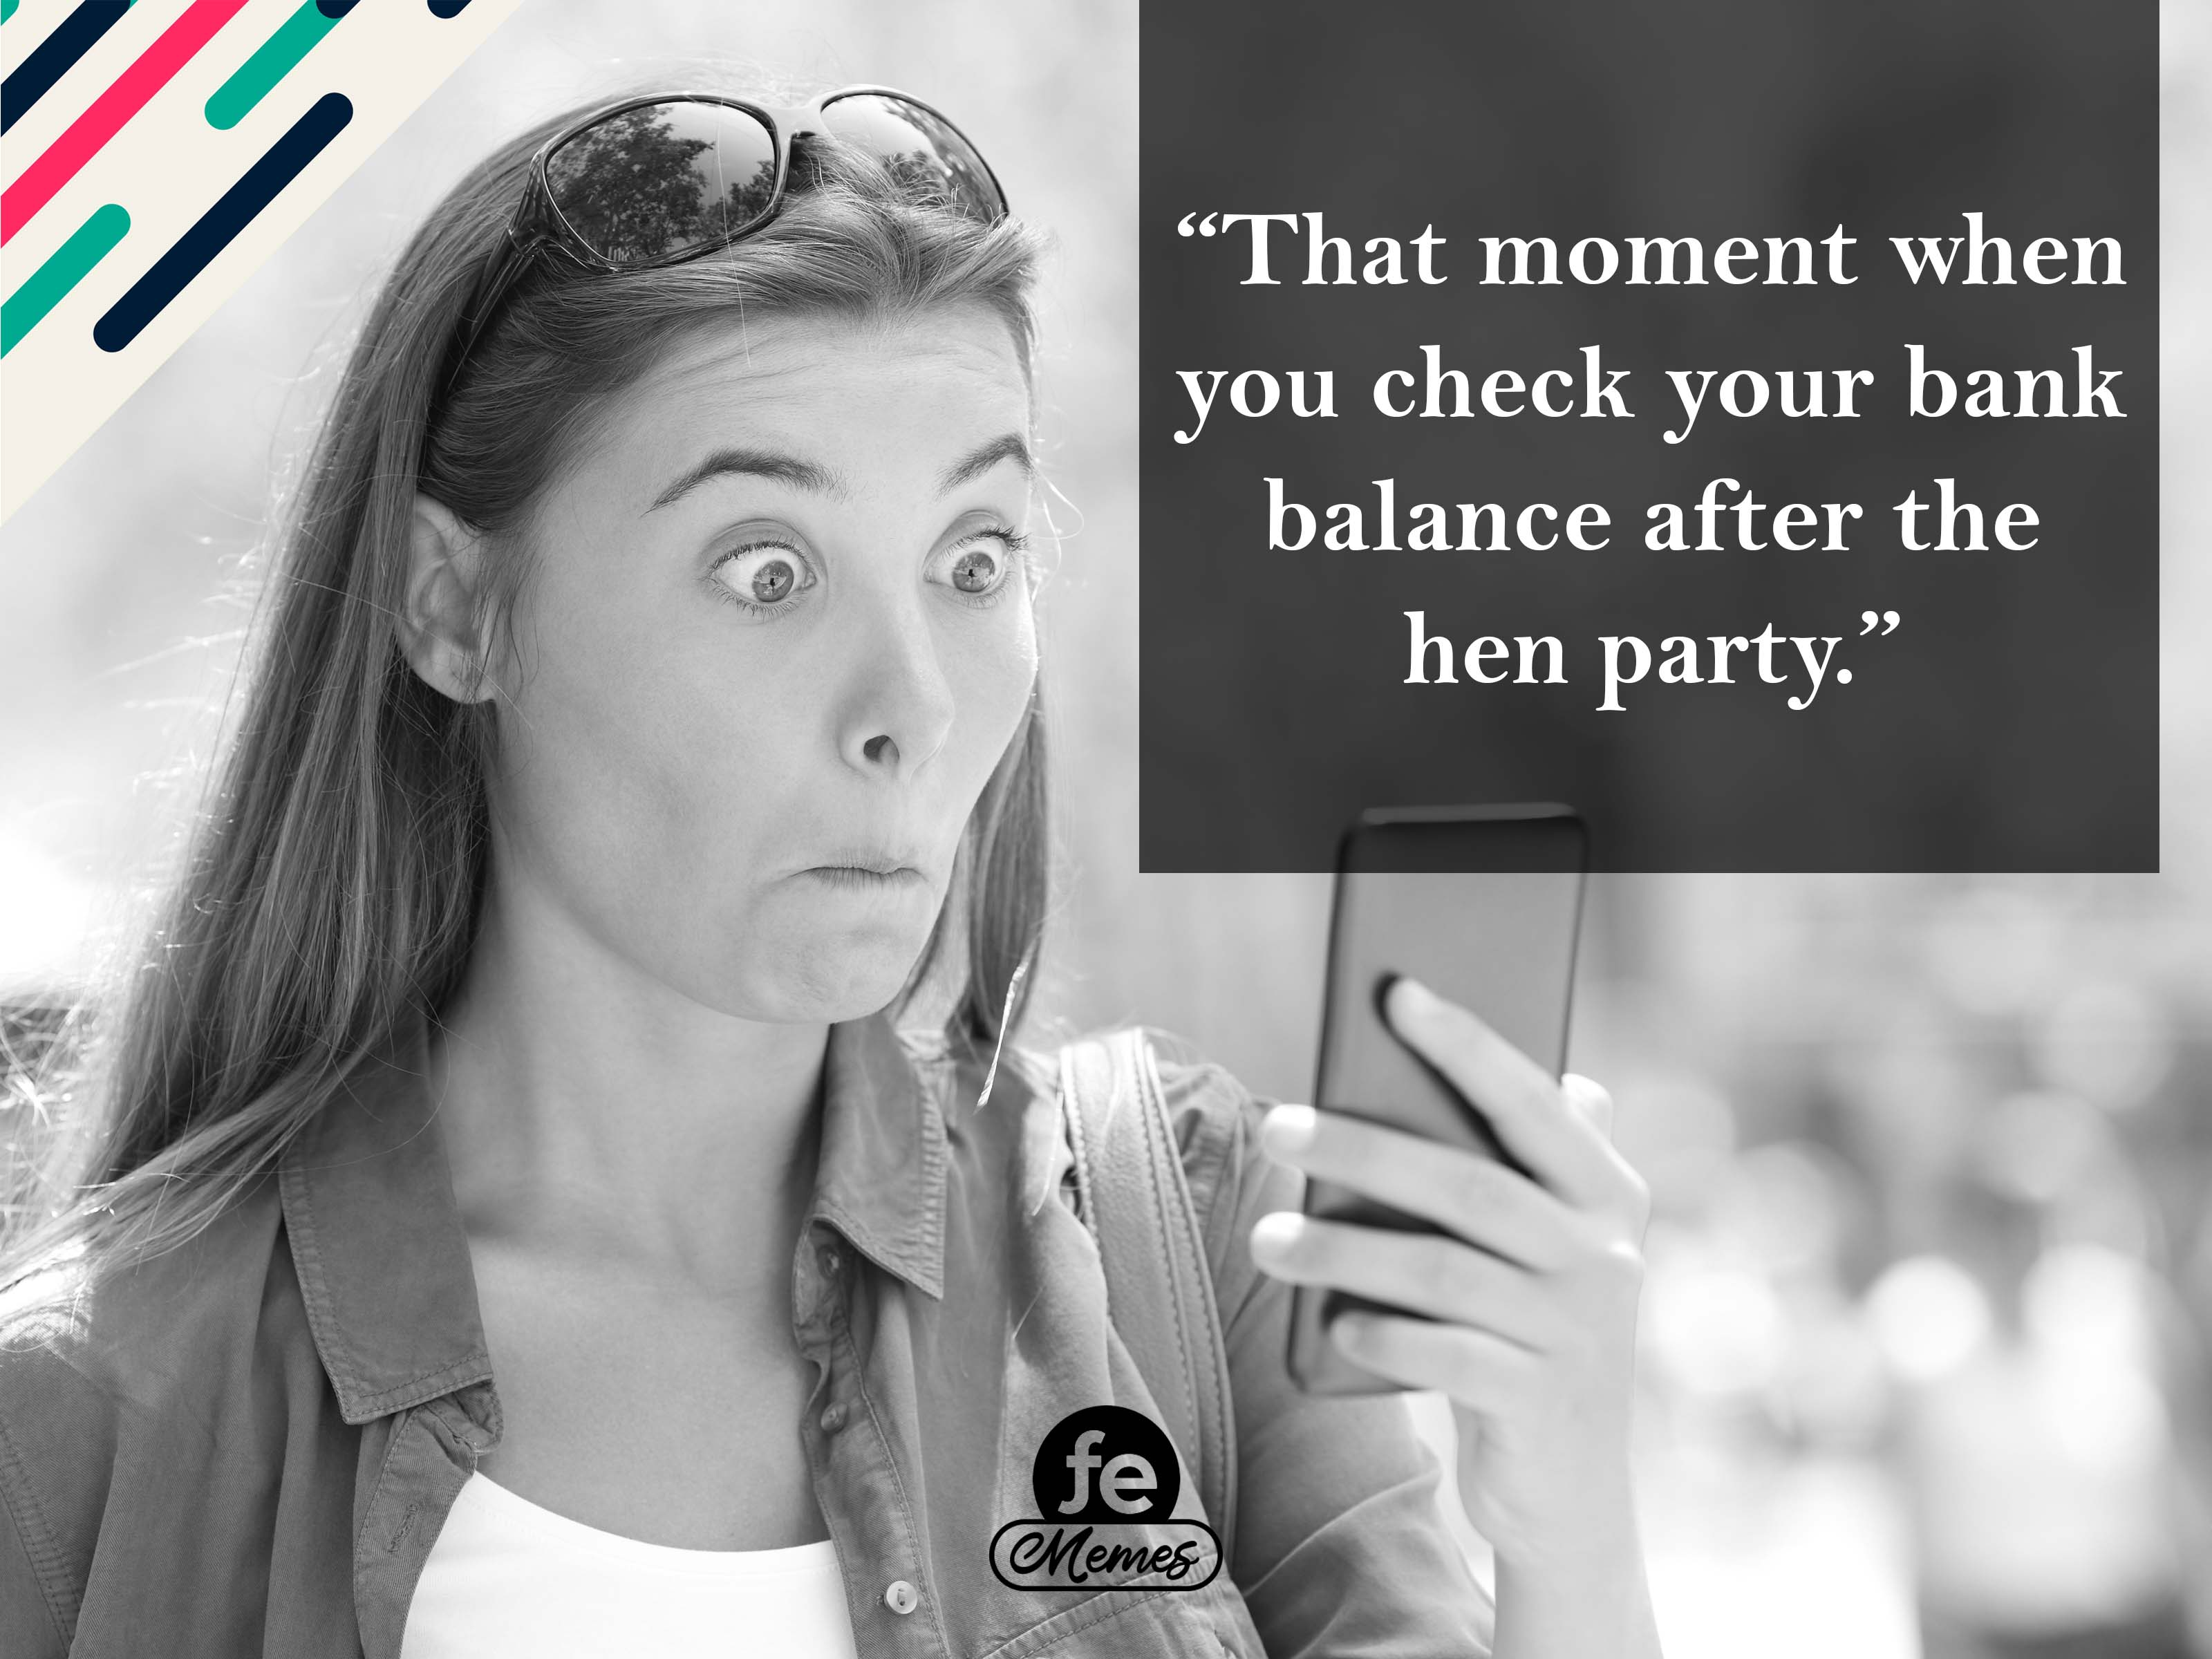 That moment when you check your bank balance after the hen party - Meme 3